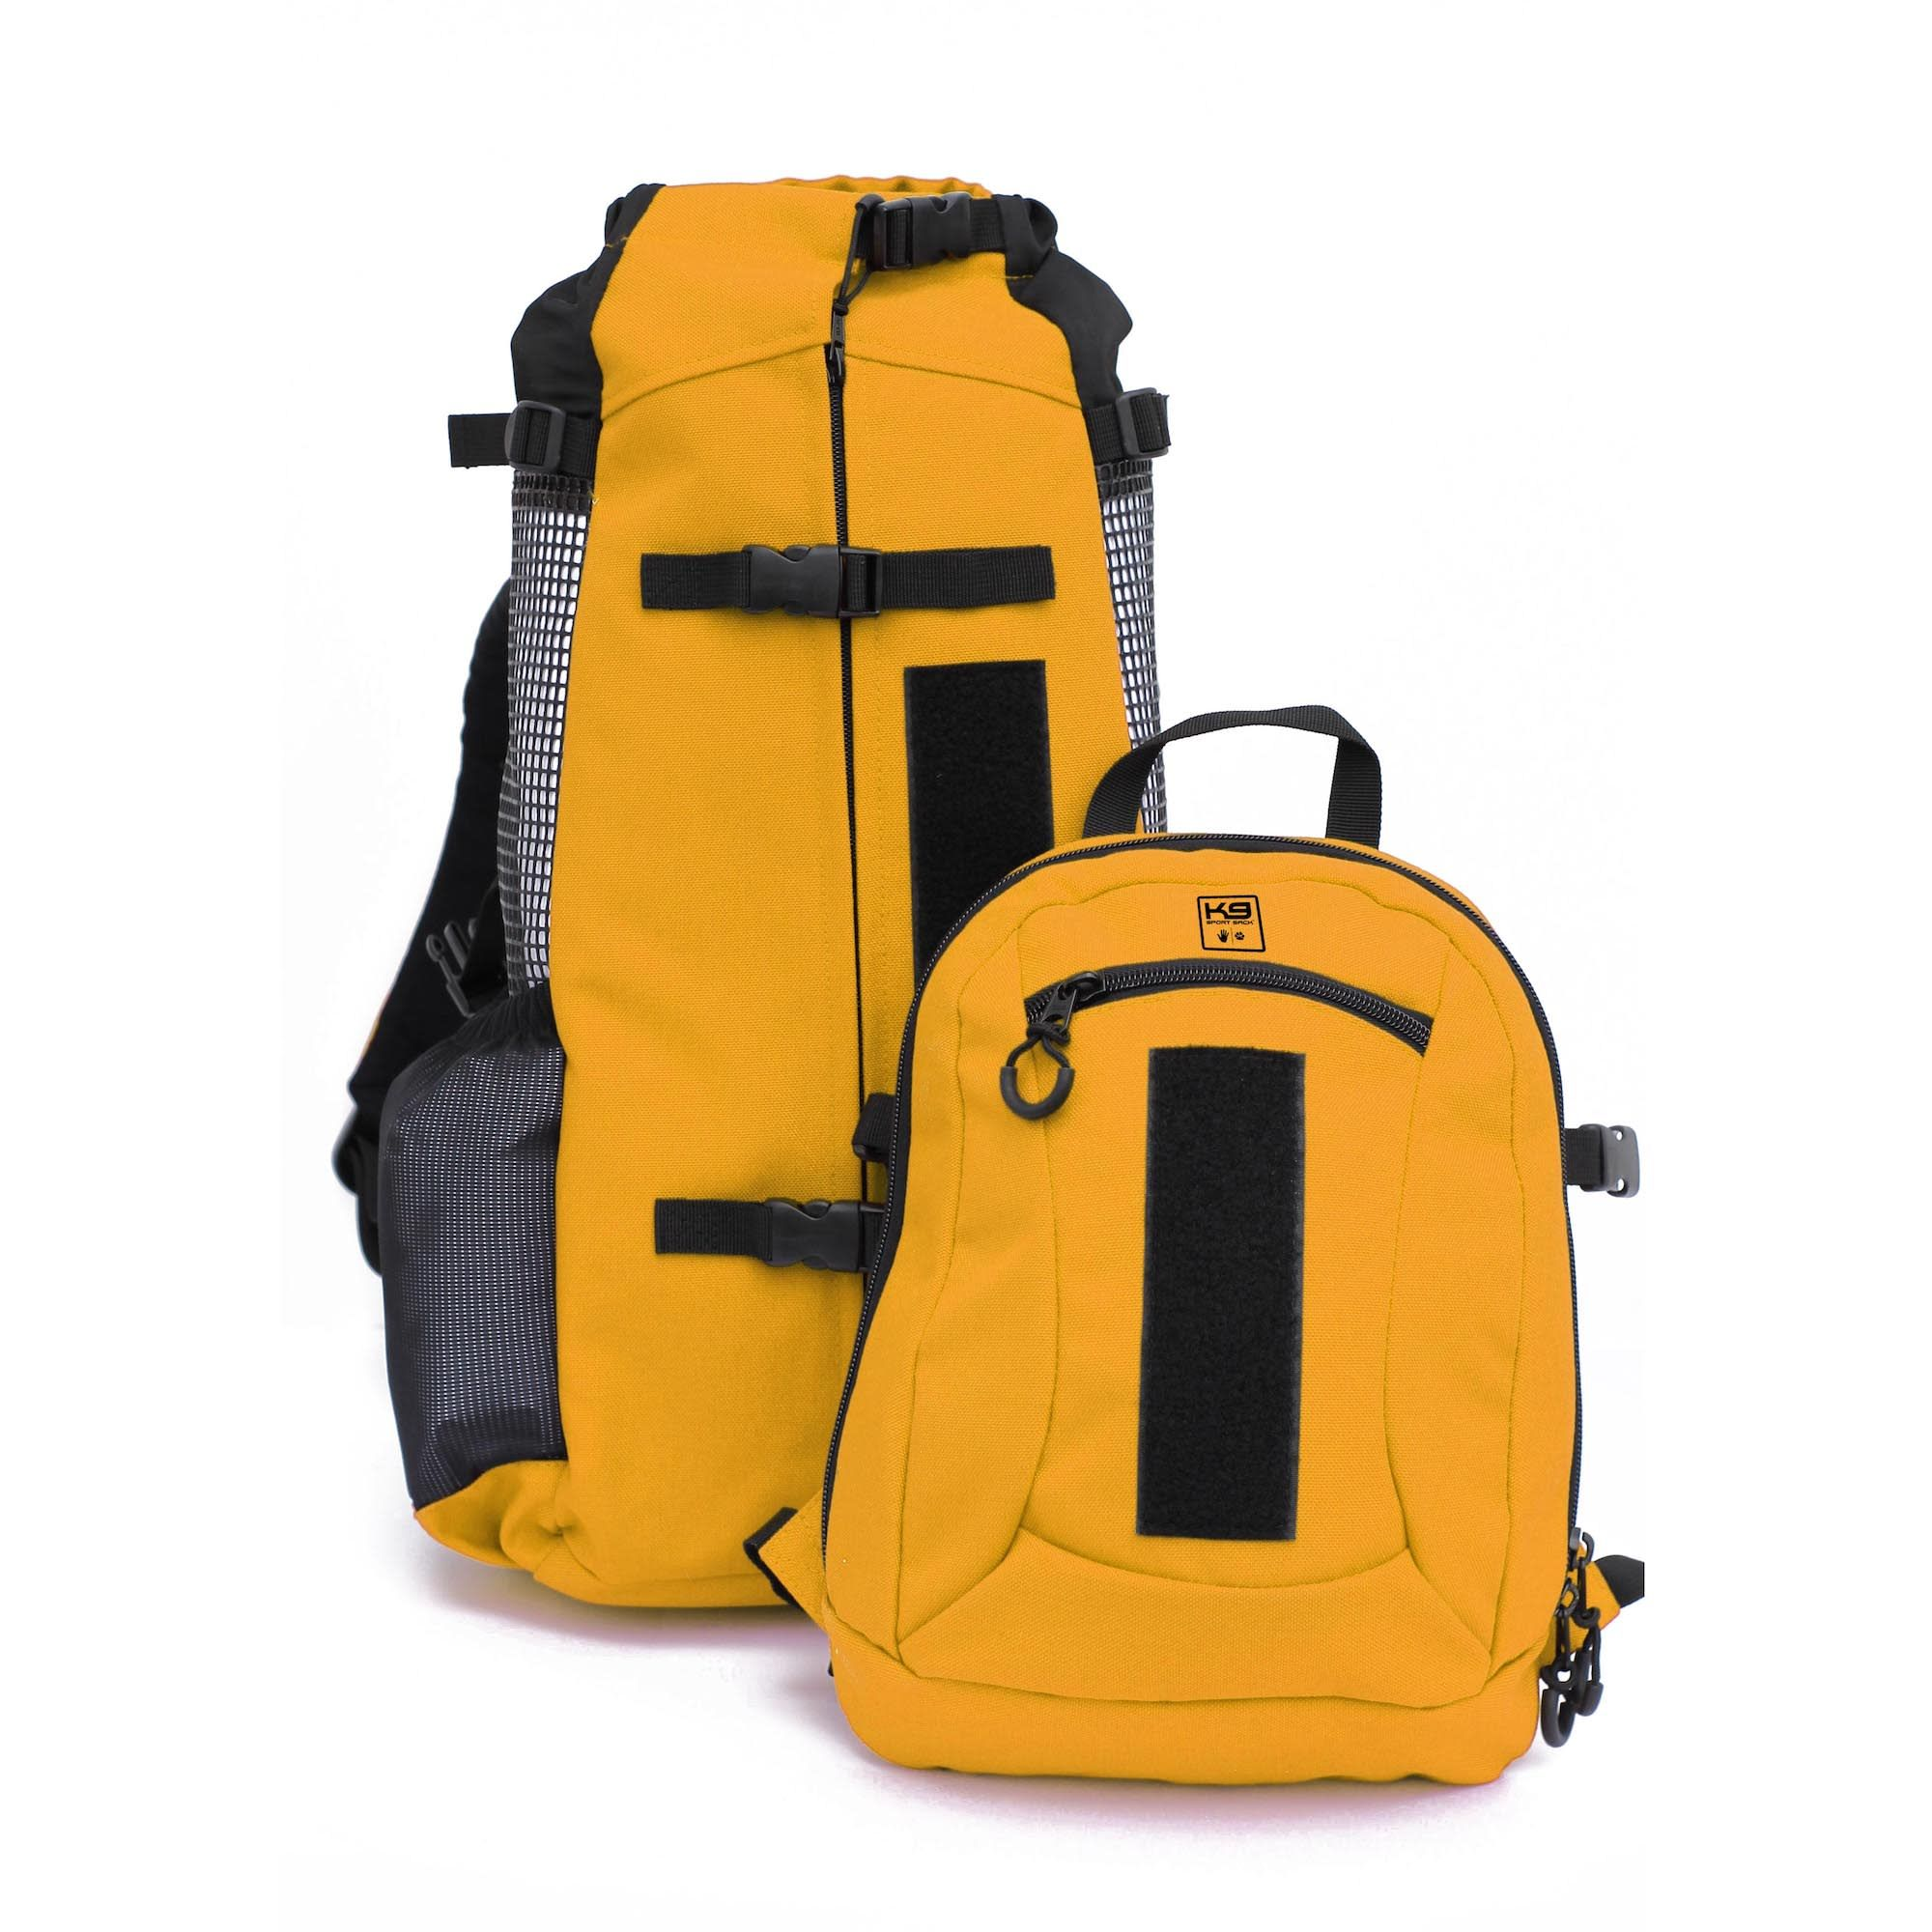 K9 Sport Sack Air Plus Yellow Backpack Pet Carrier With